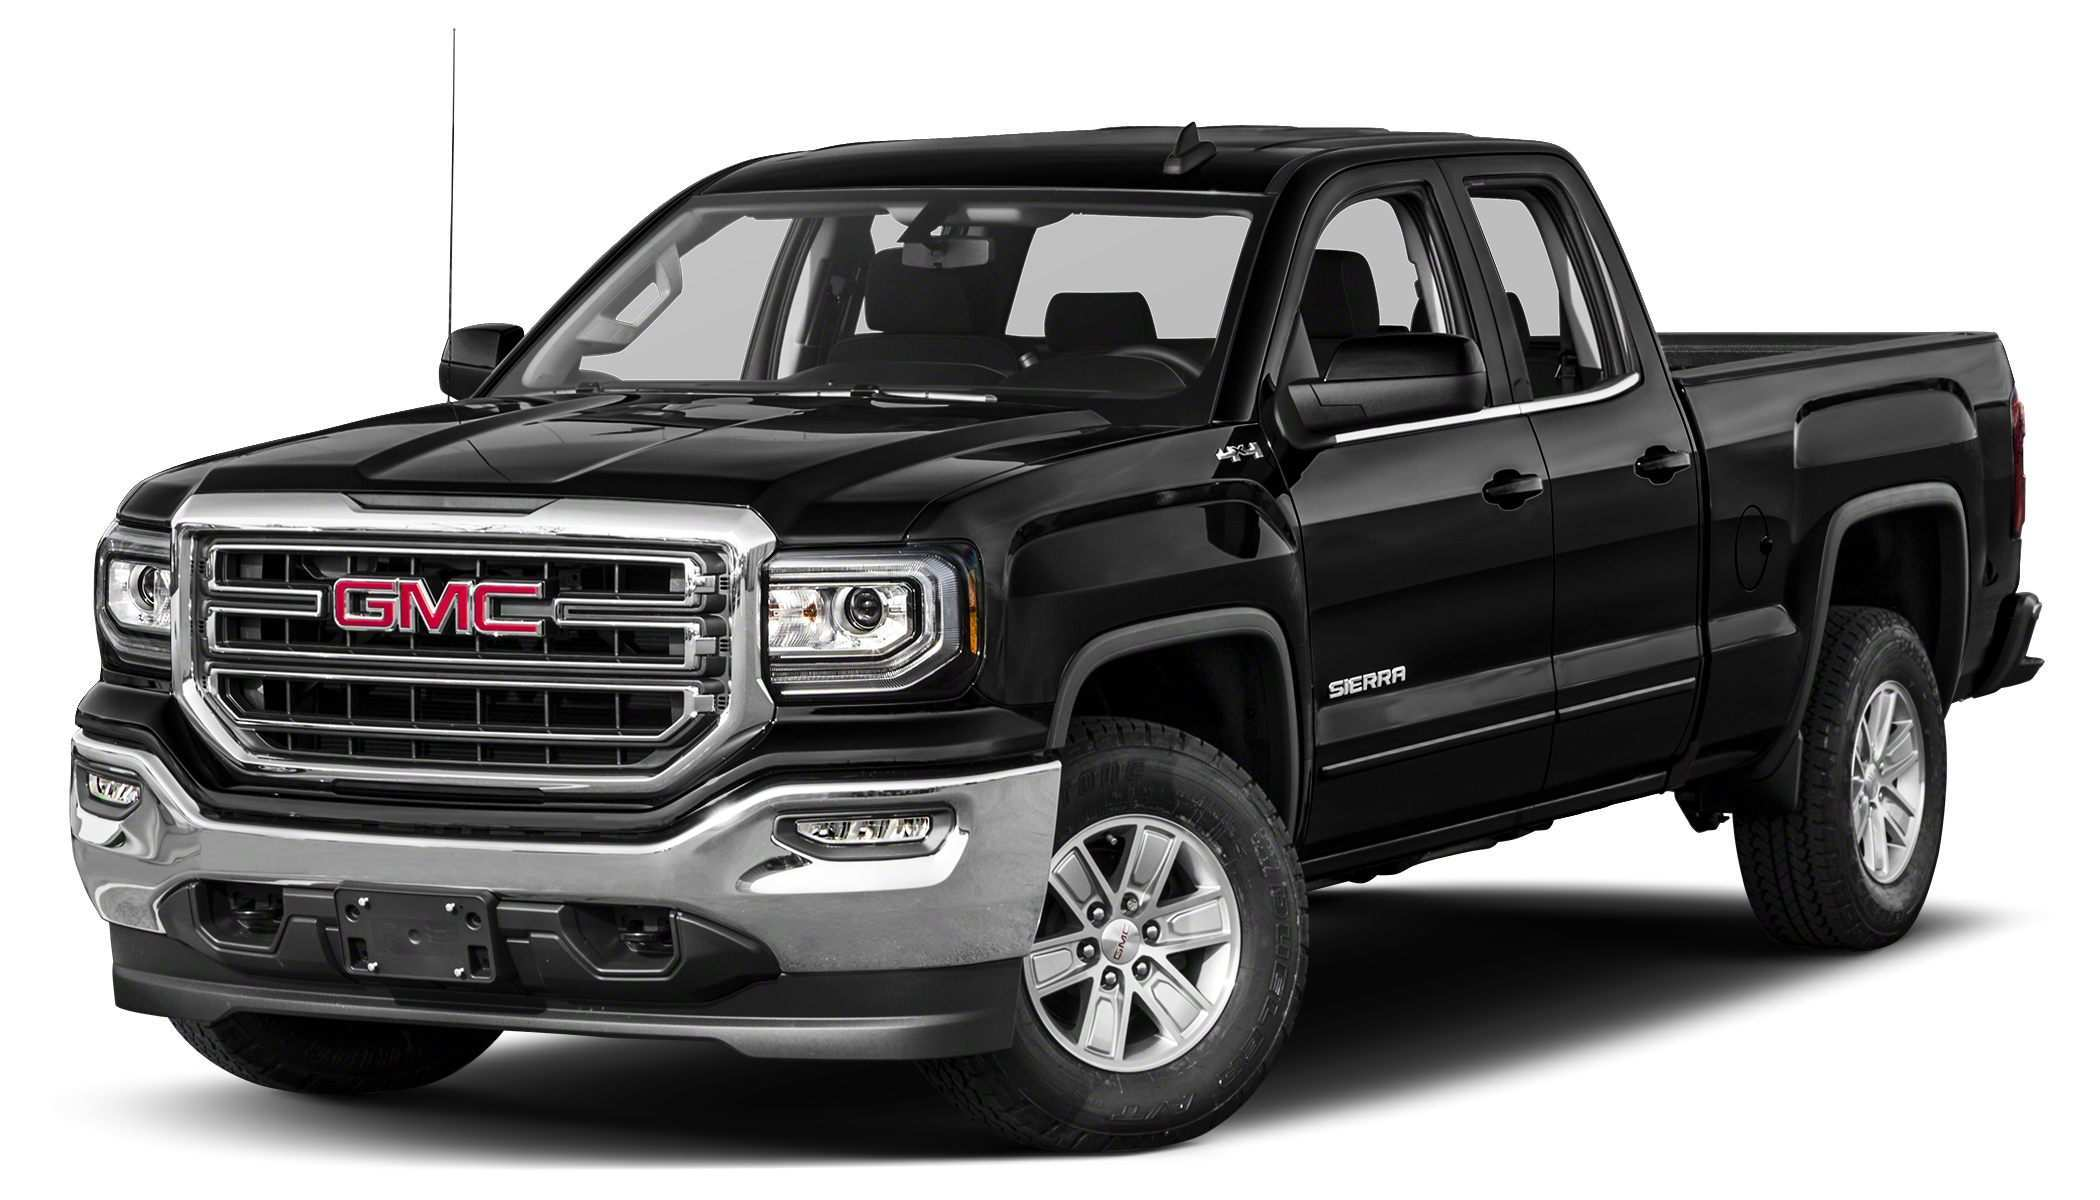 24 Gallery of New 2019 Gmc Pickup Truck Review Specs And Release Date History for New 2019 Gmc Pickup Truck Review Specs And Release Date